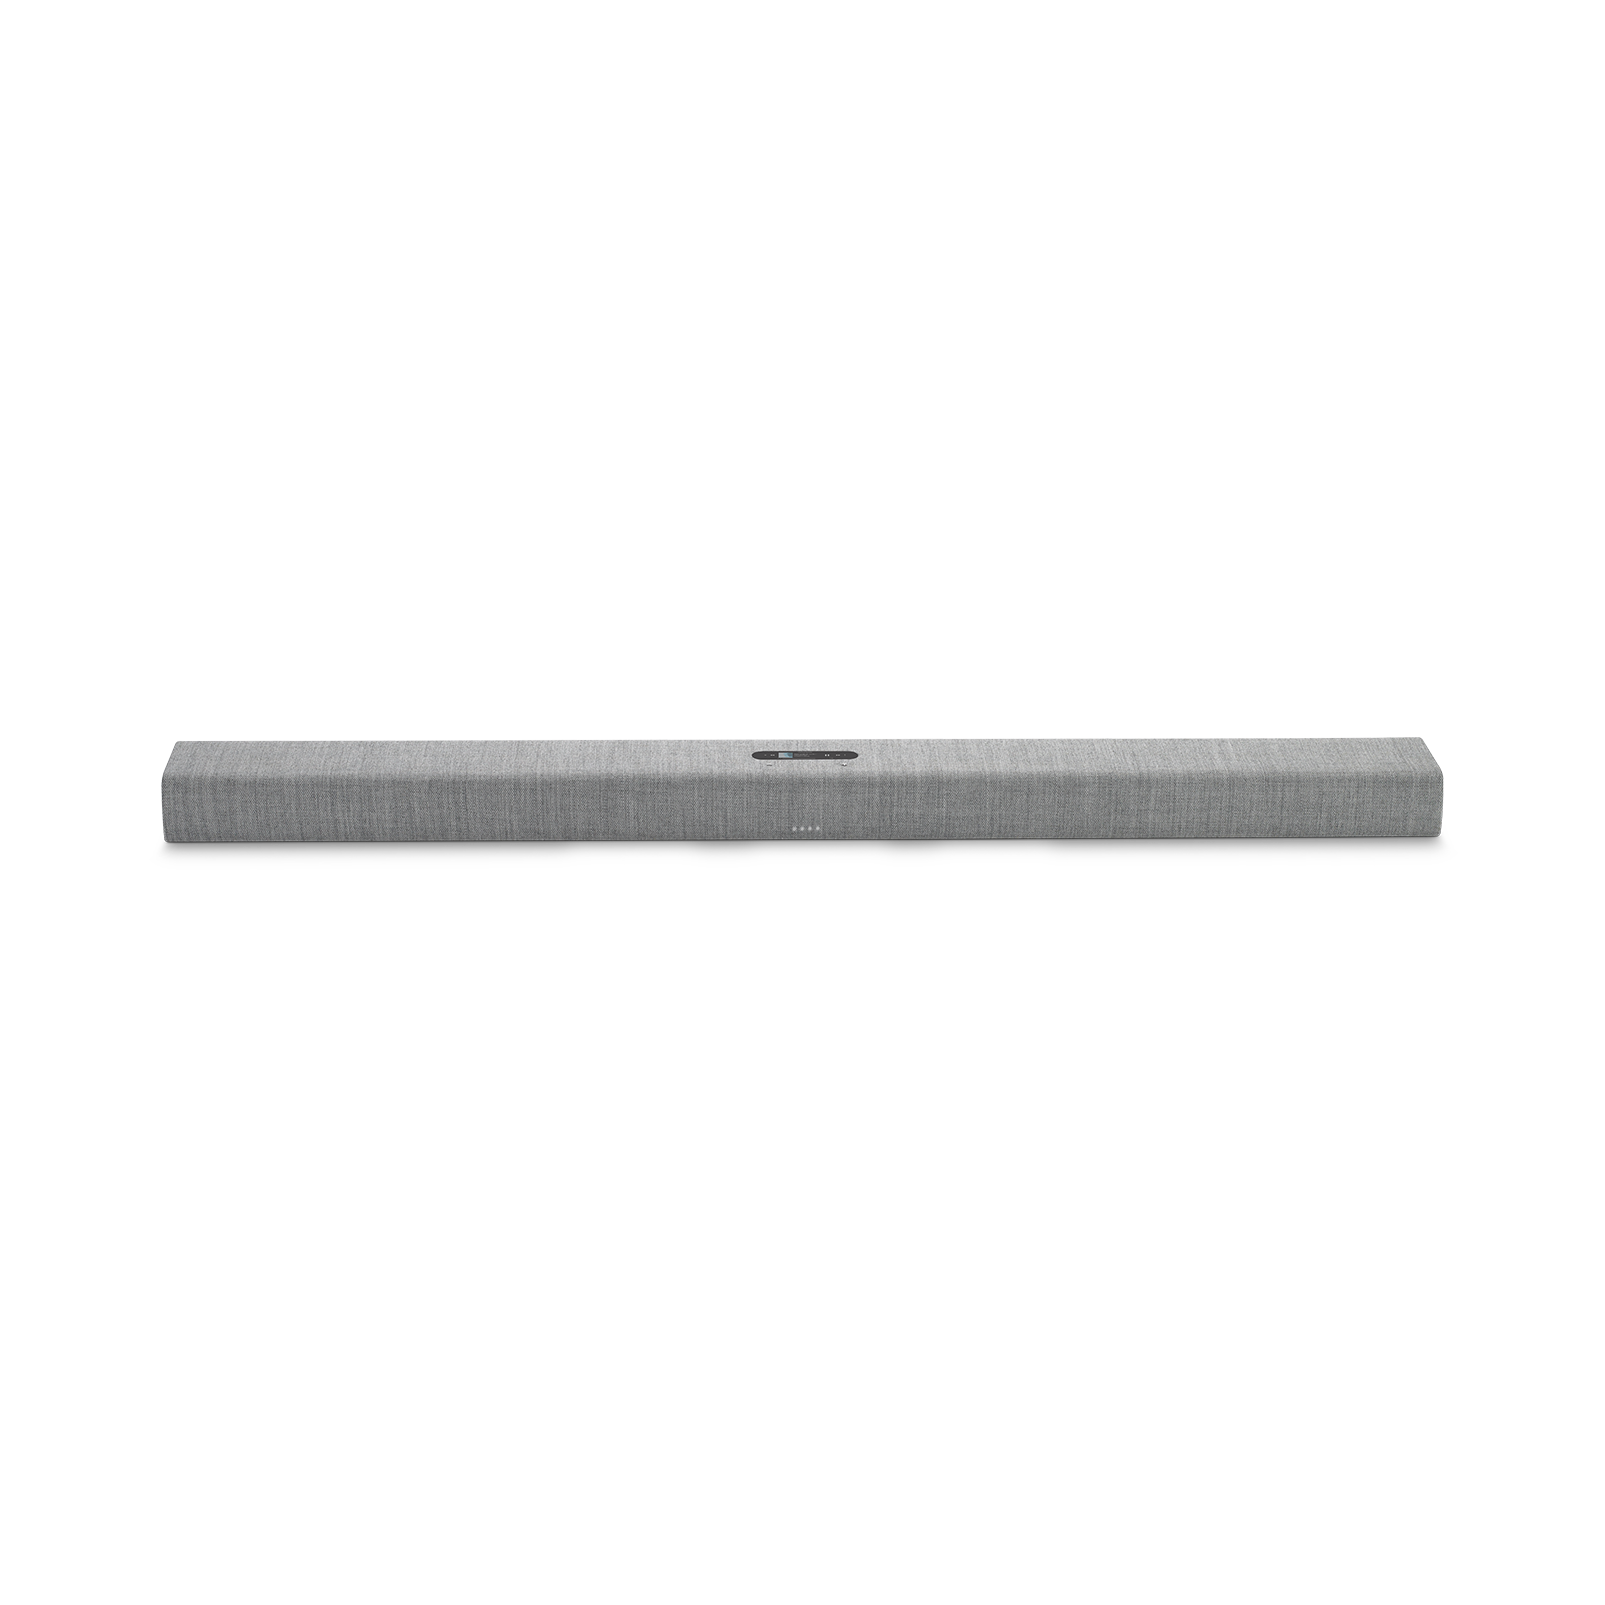 Harman Kardon Citation Bar - Grey - The smartest soundbar for movies and music - Front